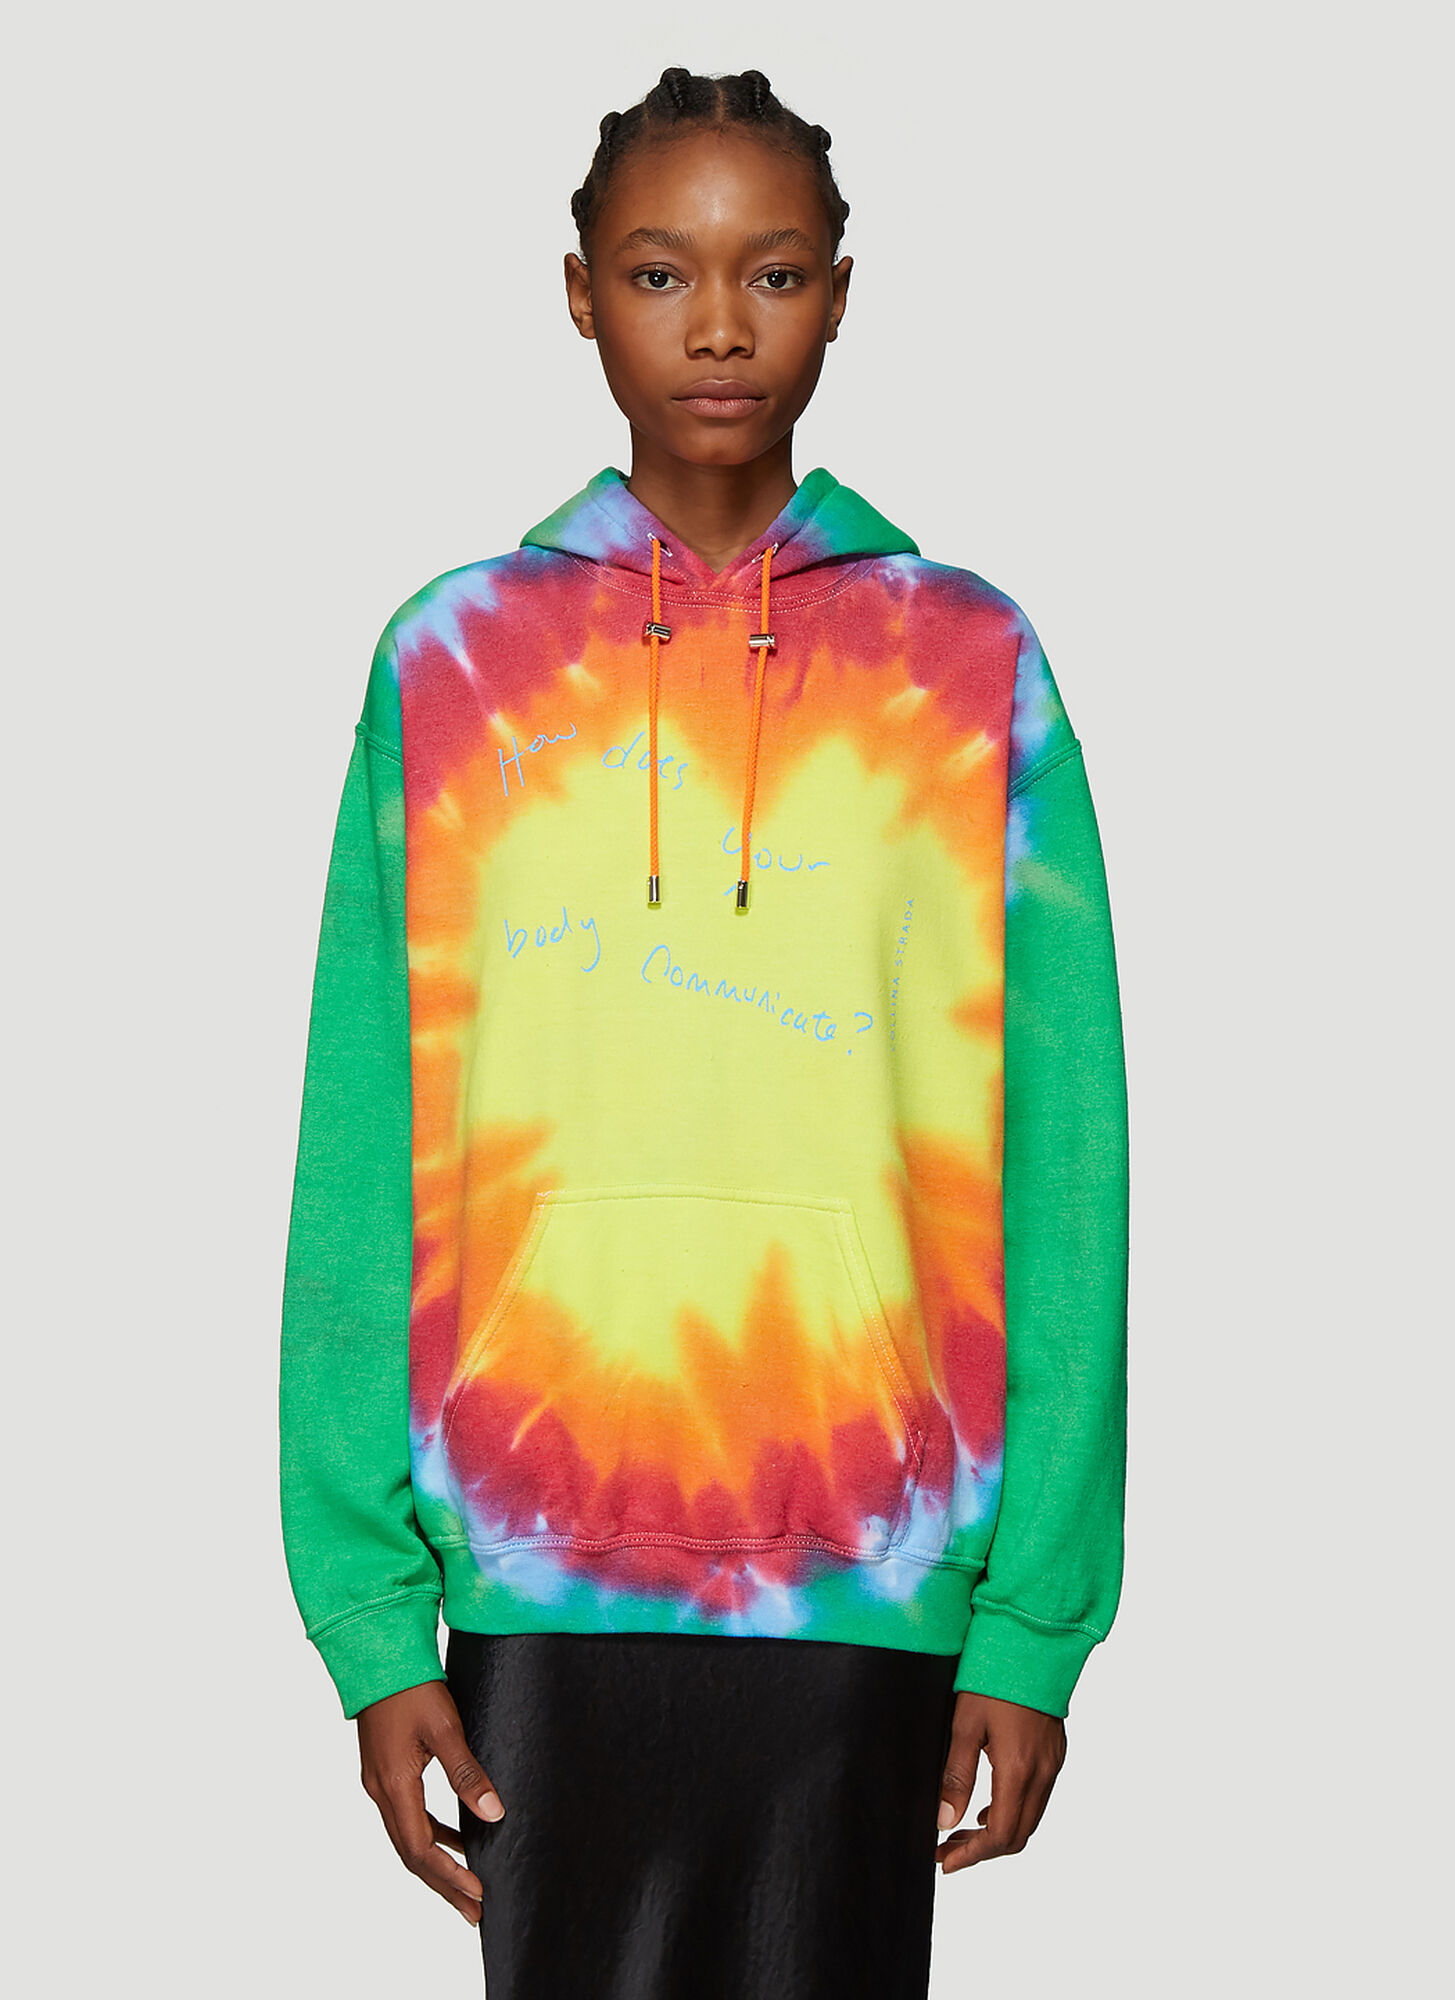 Photo of Collina Strada Tie Dye Body Communicate Hooded Sweatshirt in Orange - Collina Strada Sweatshirts